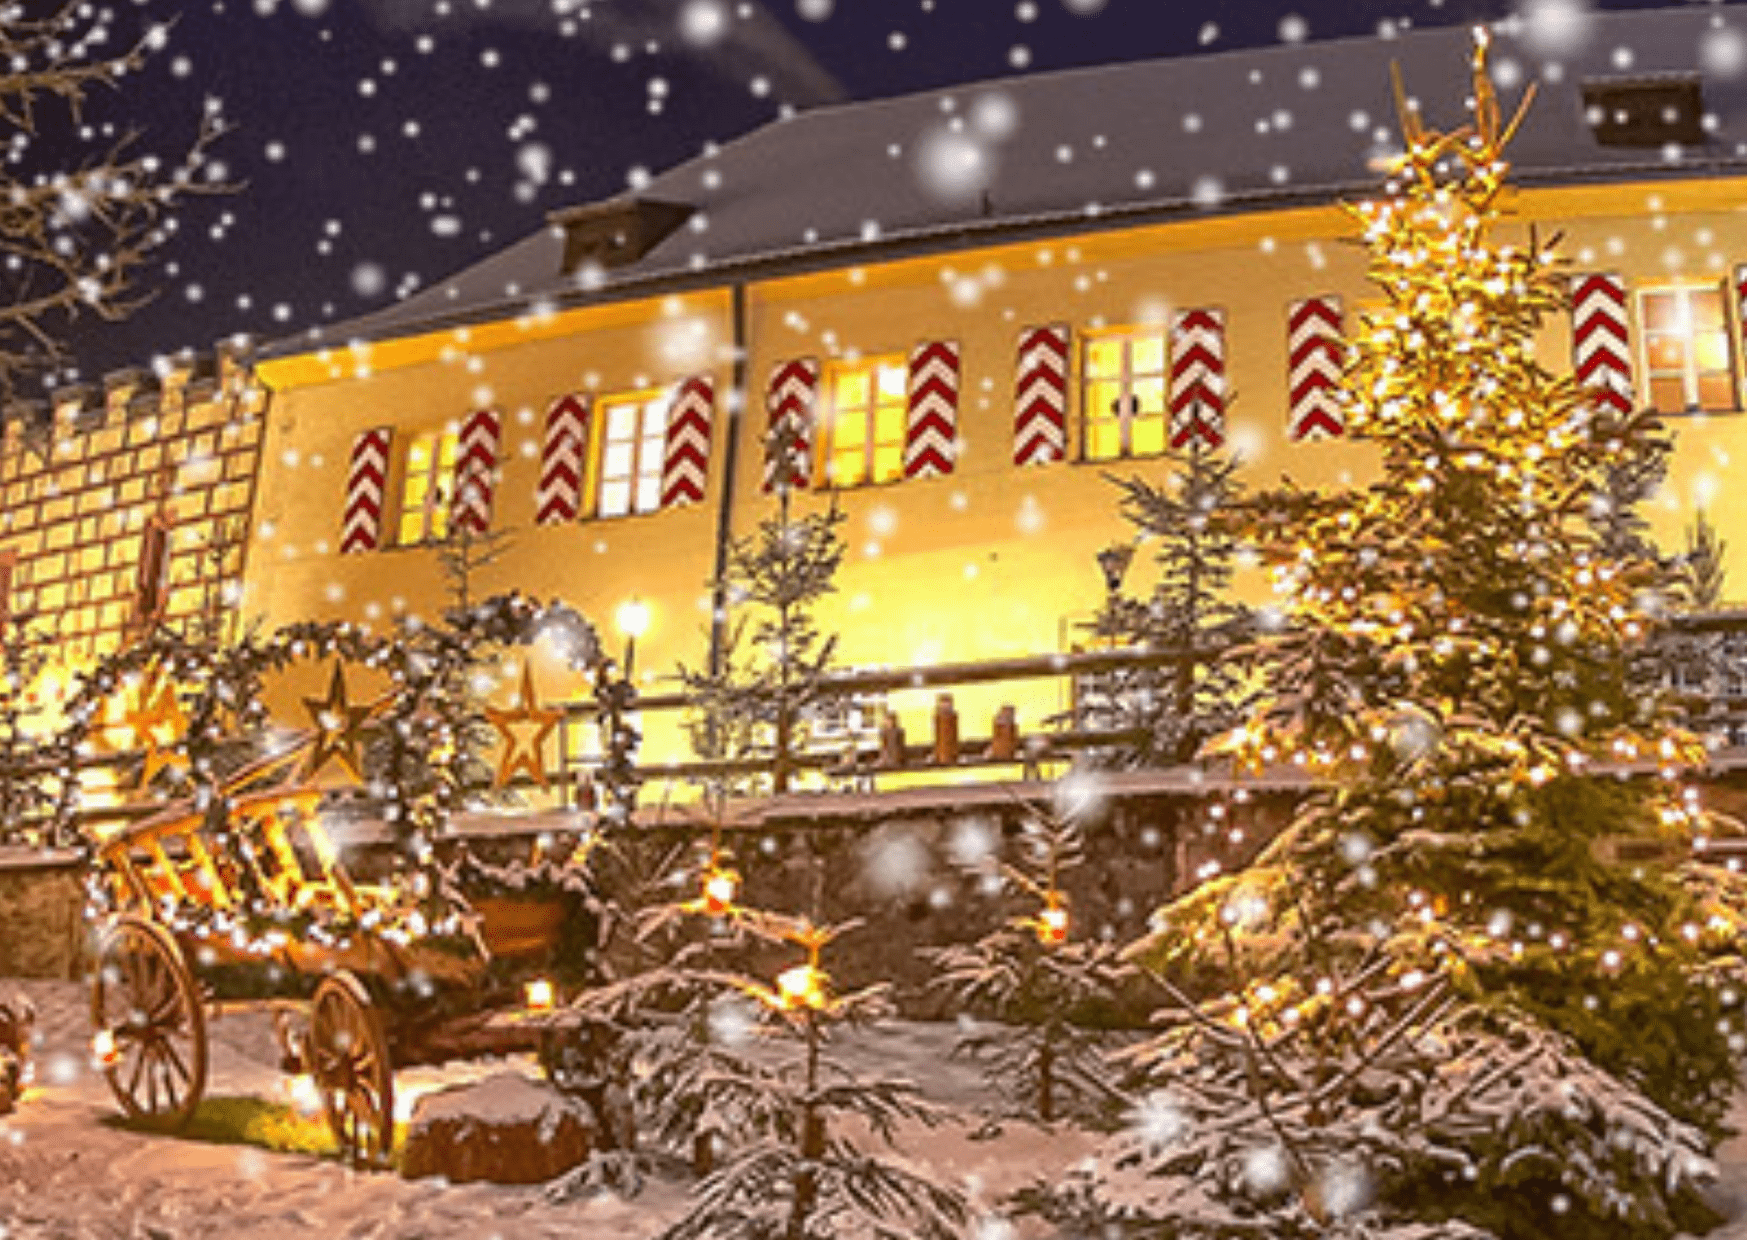 Christmas market (and snow) at Guteneck Palace, which has been voted best German Christmas market more than once.